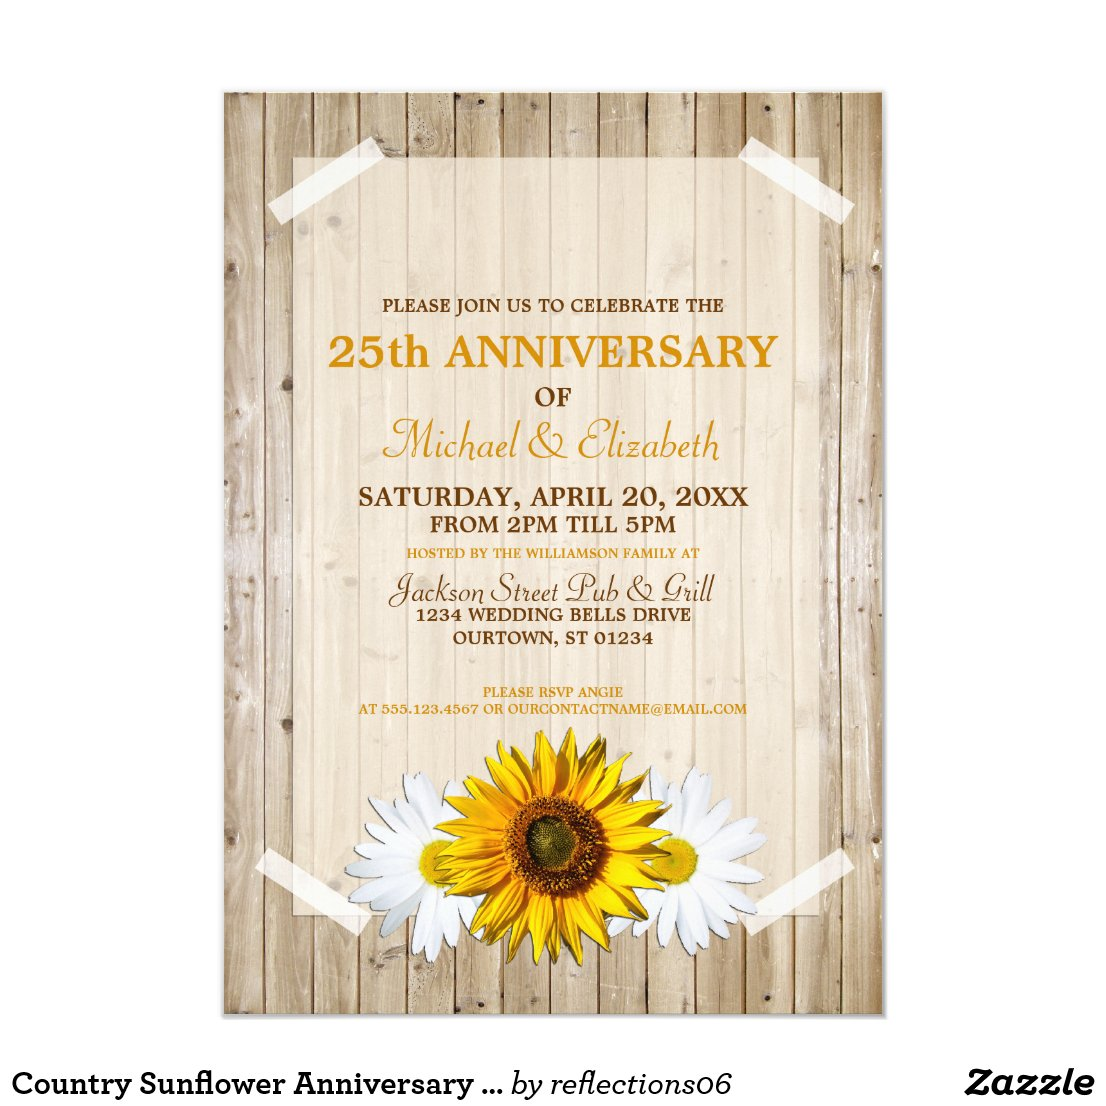 Country Sunflower Anniversary Party Invitation